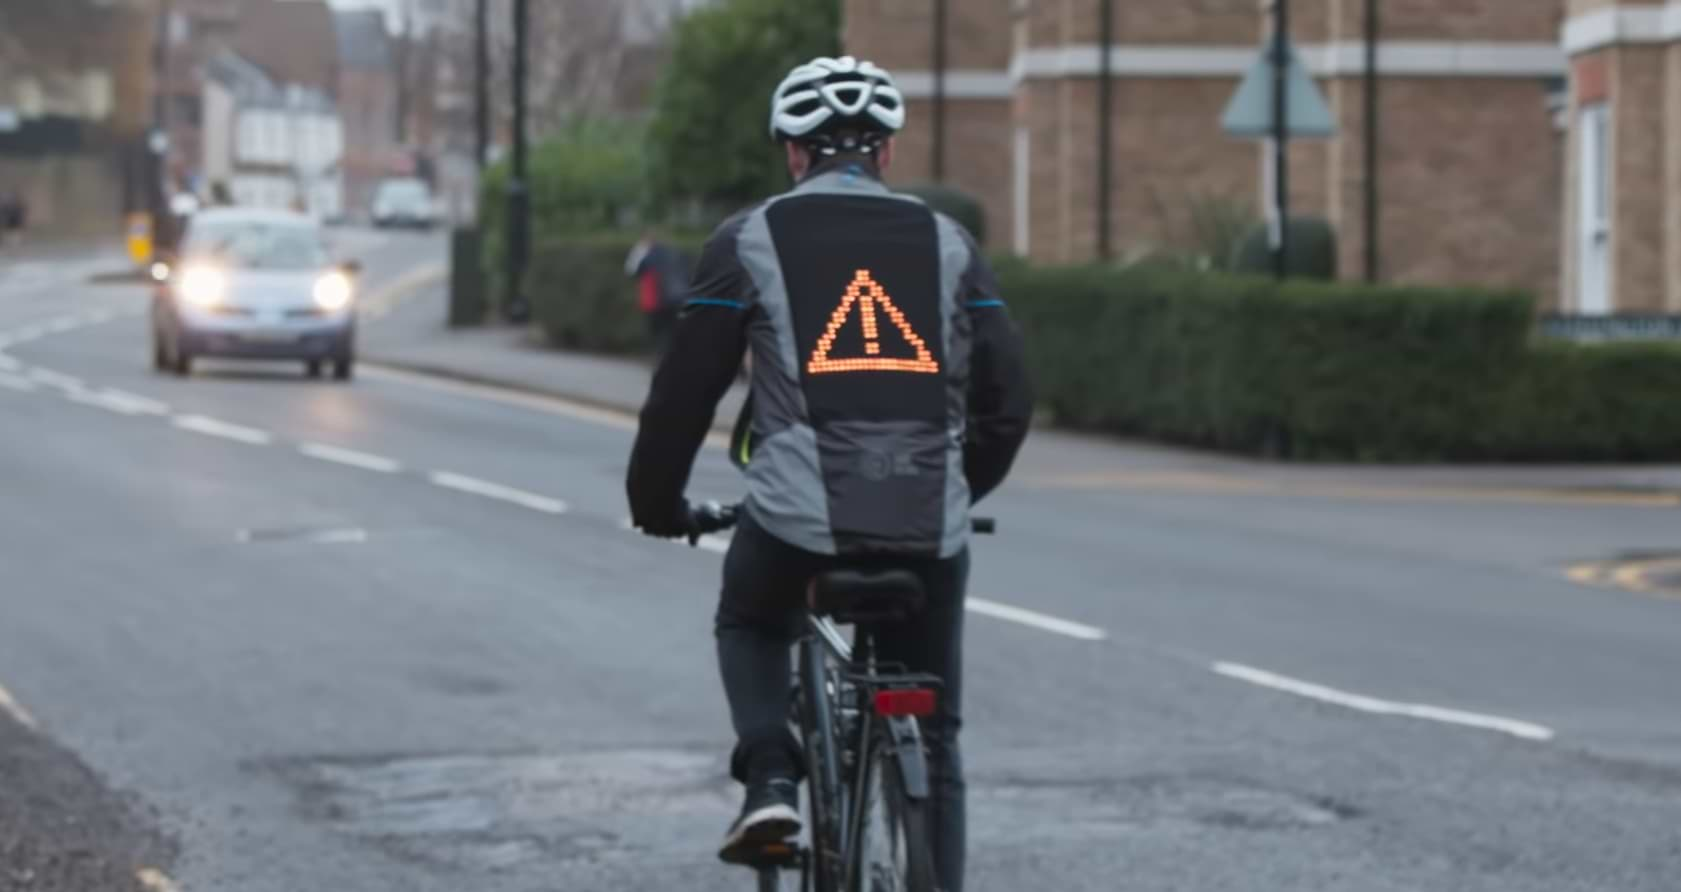 Ford Creates The 'emoji Jacket' For Cyclists To Communicate With Drivers 1